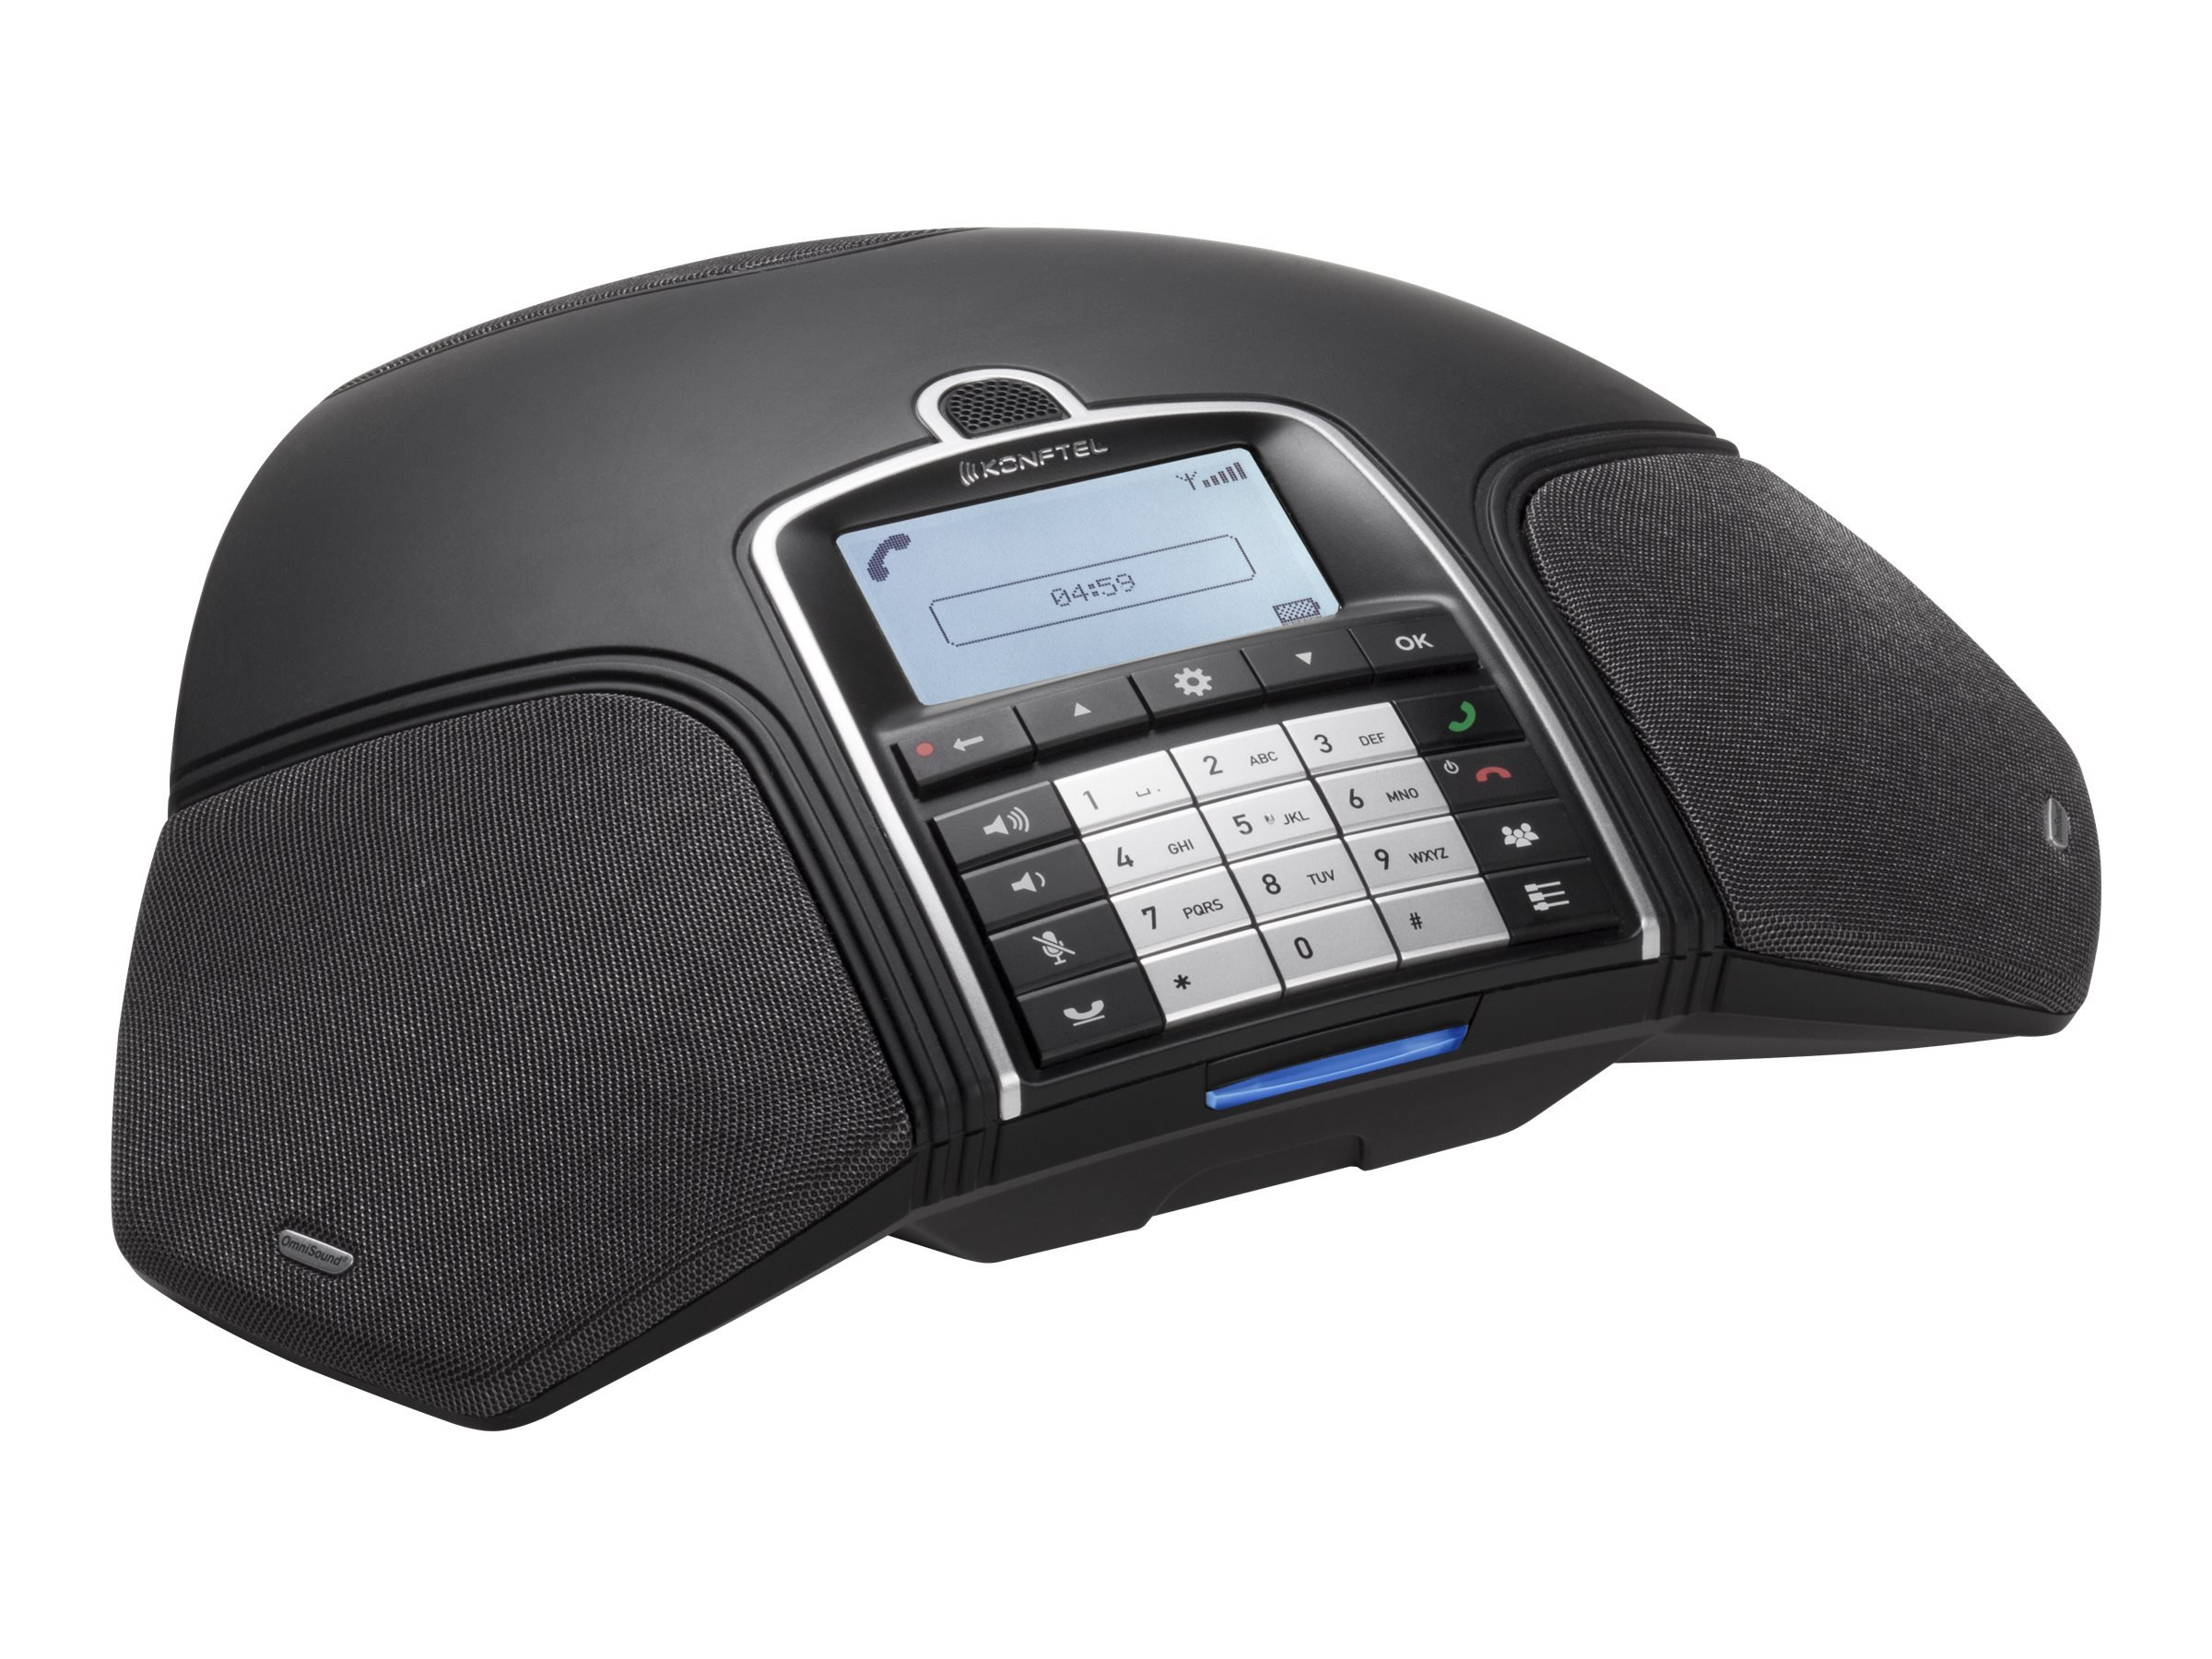 Konftel 300wx Wireless Conference Phone, Black by Konftel (Image #5)